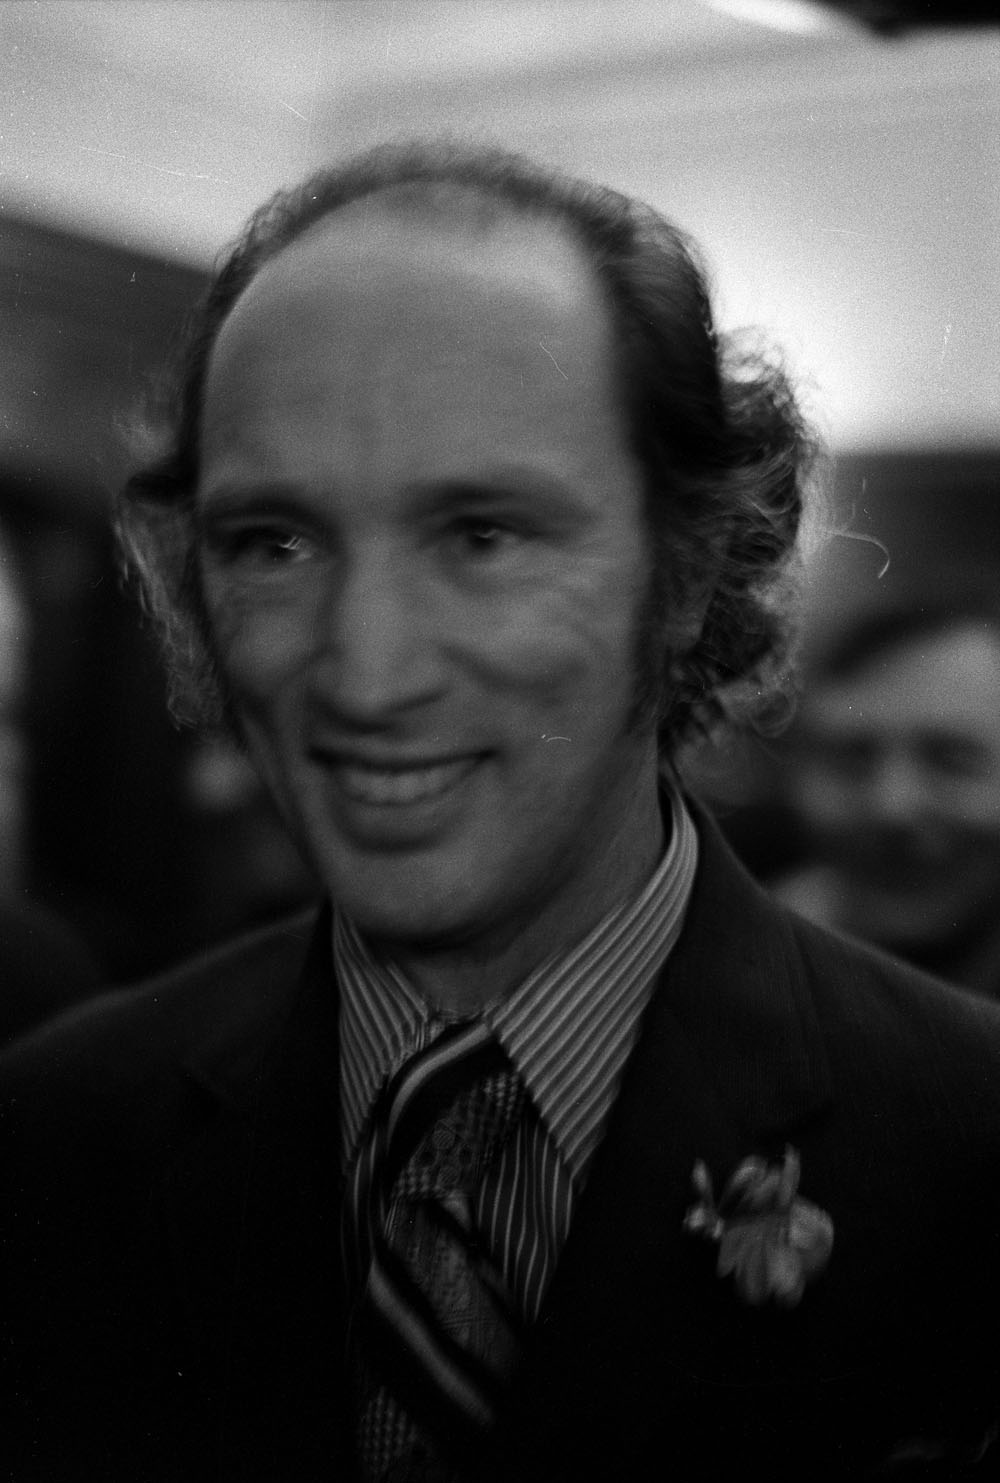 an introduction to the history of pierre elliott trudeau History spotlight: pierre and margaret trudeau to get past the introduction, move cursor to 4 minute, 10 second mark make a donation to canada's history society you can help make our past relevant, engaging, empowering and accessible.